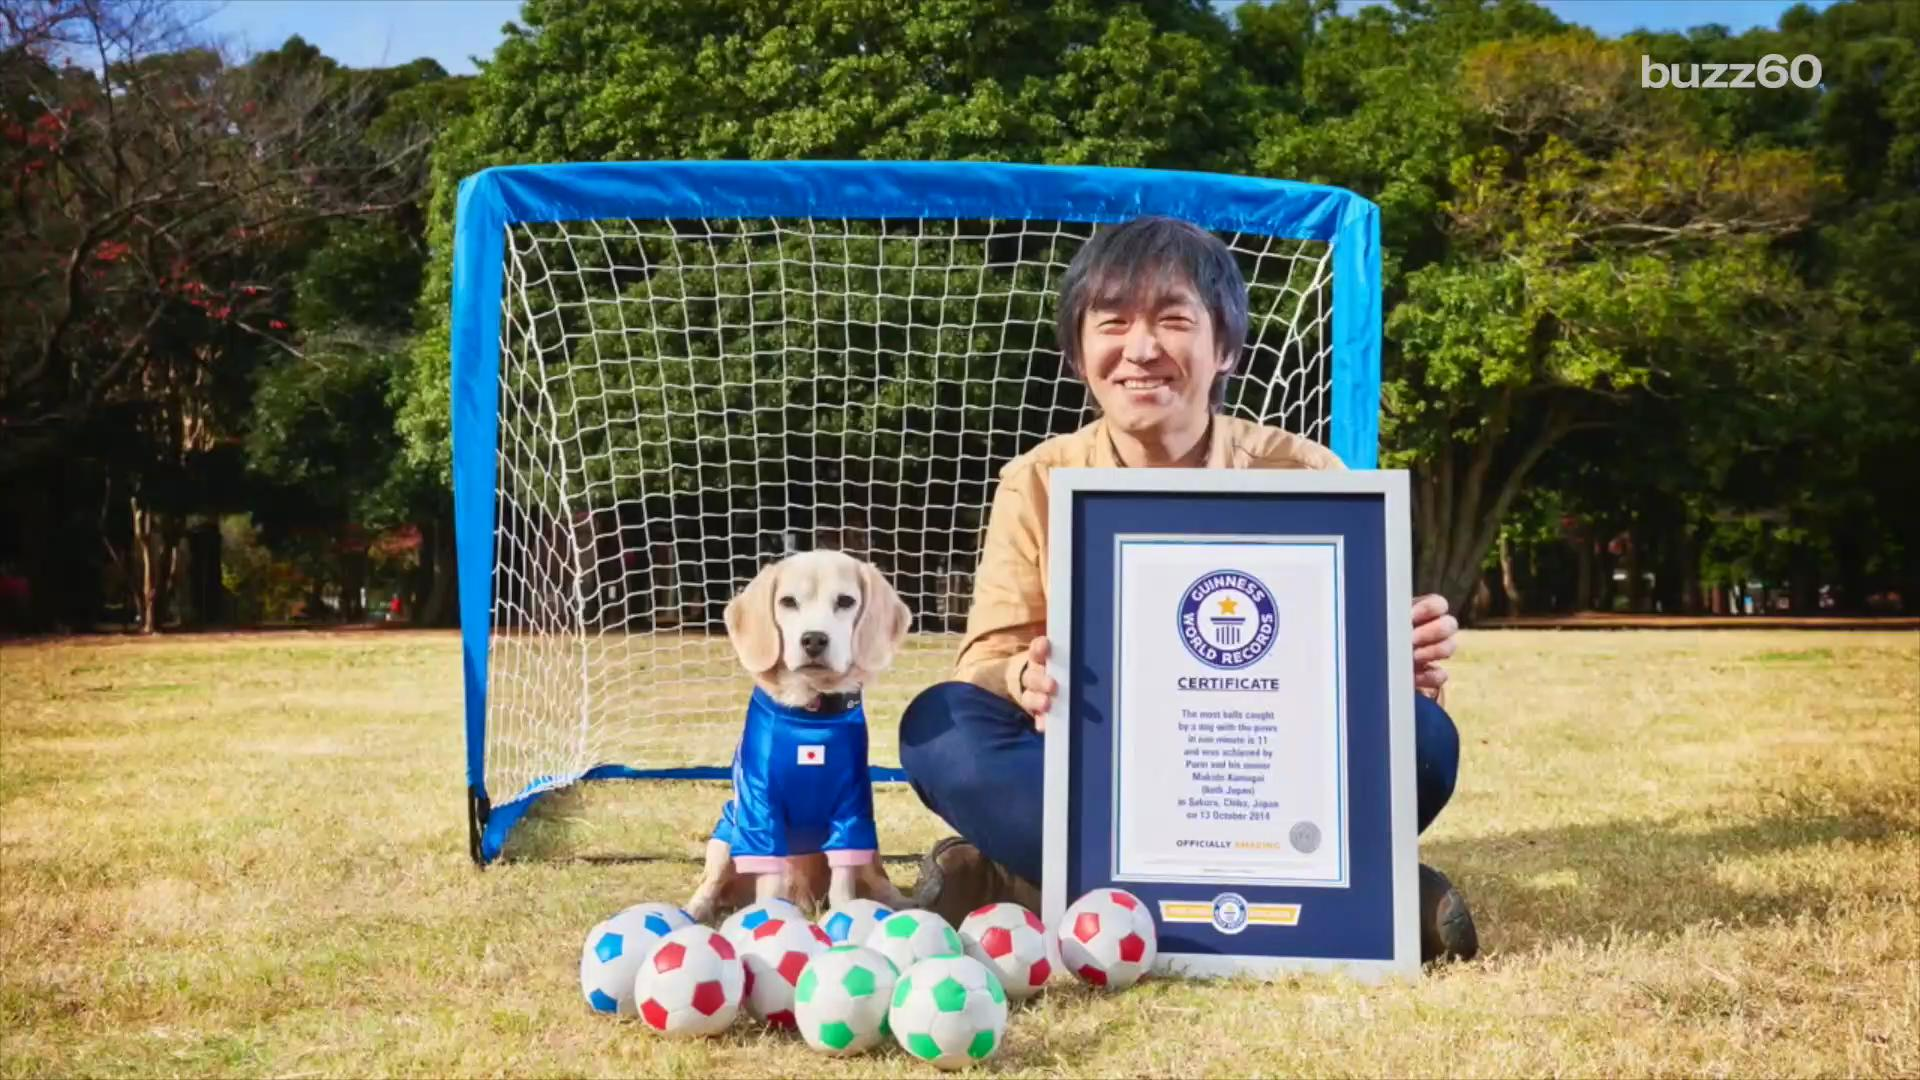 Amazing Dog Can Catch World-Record-Breaking Number of Balls